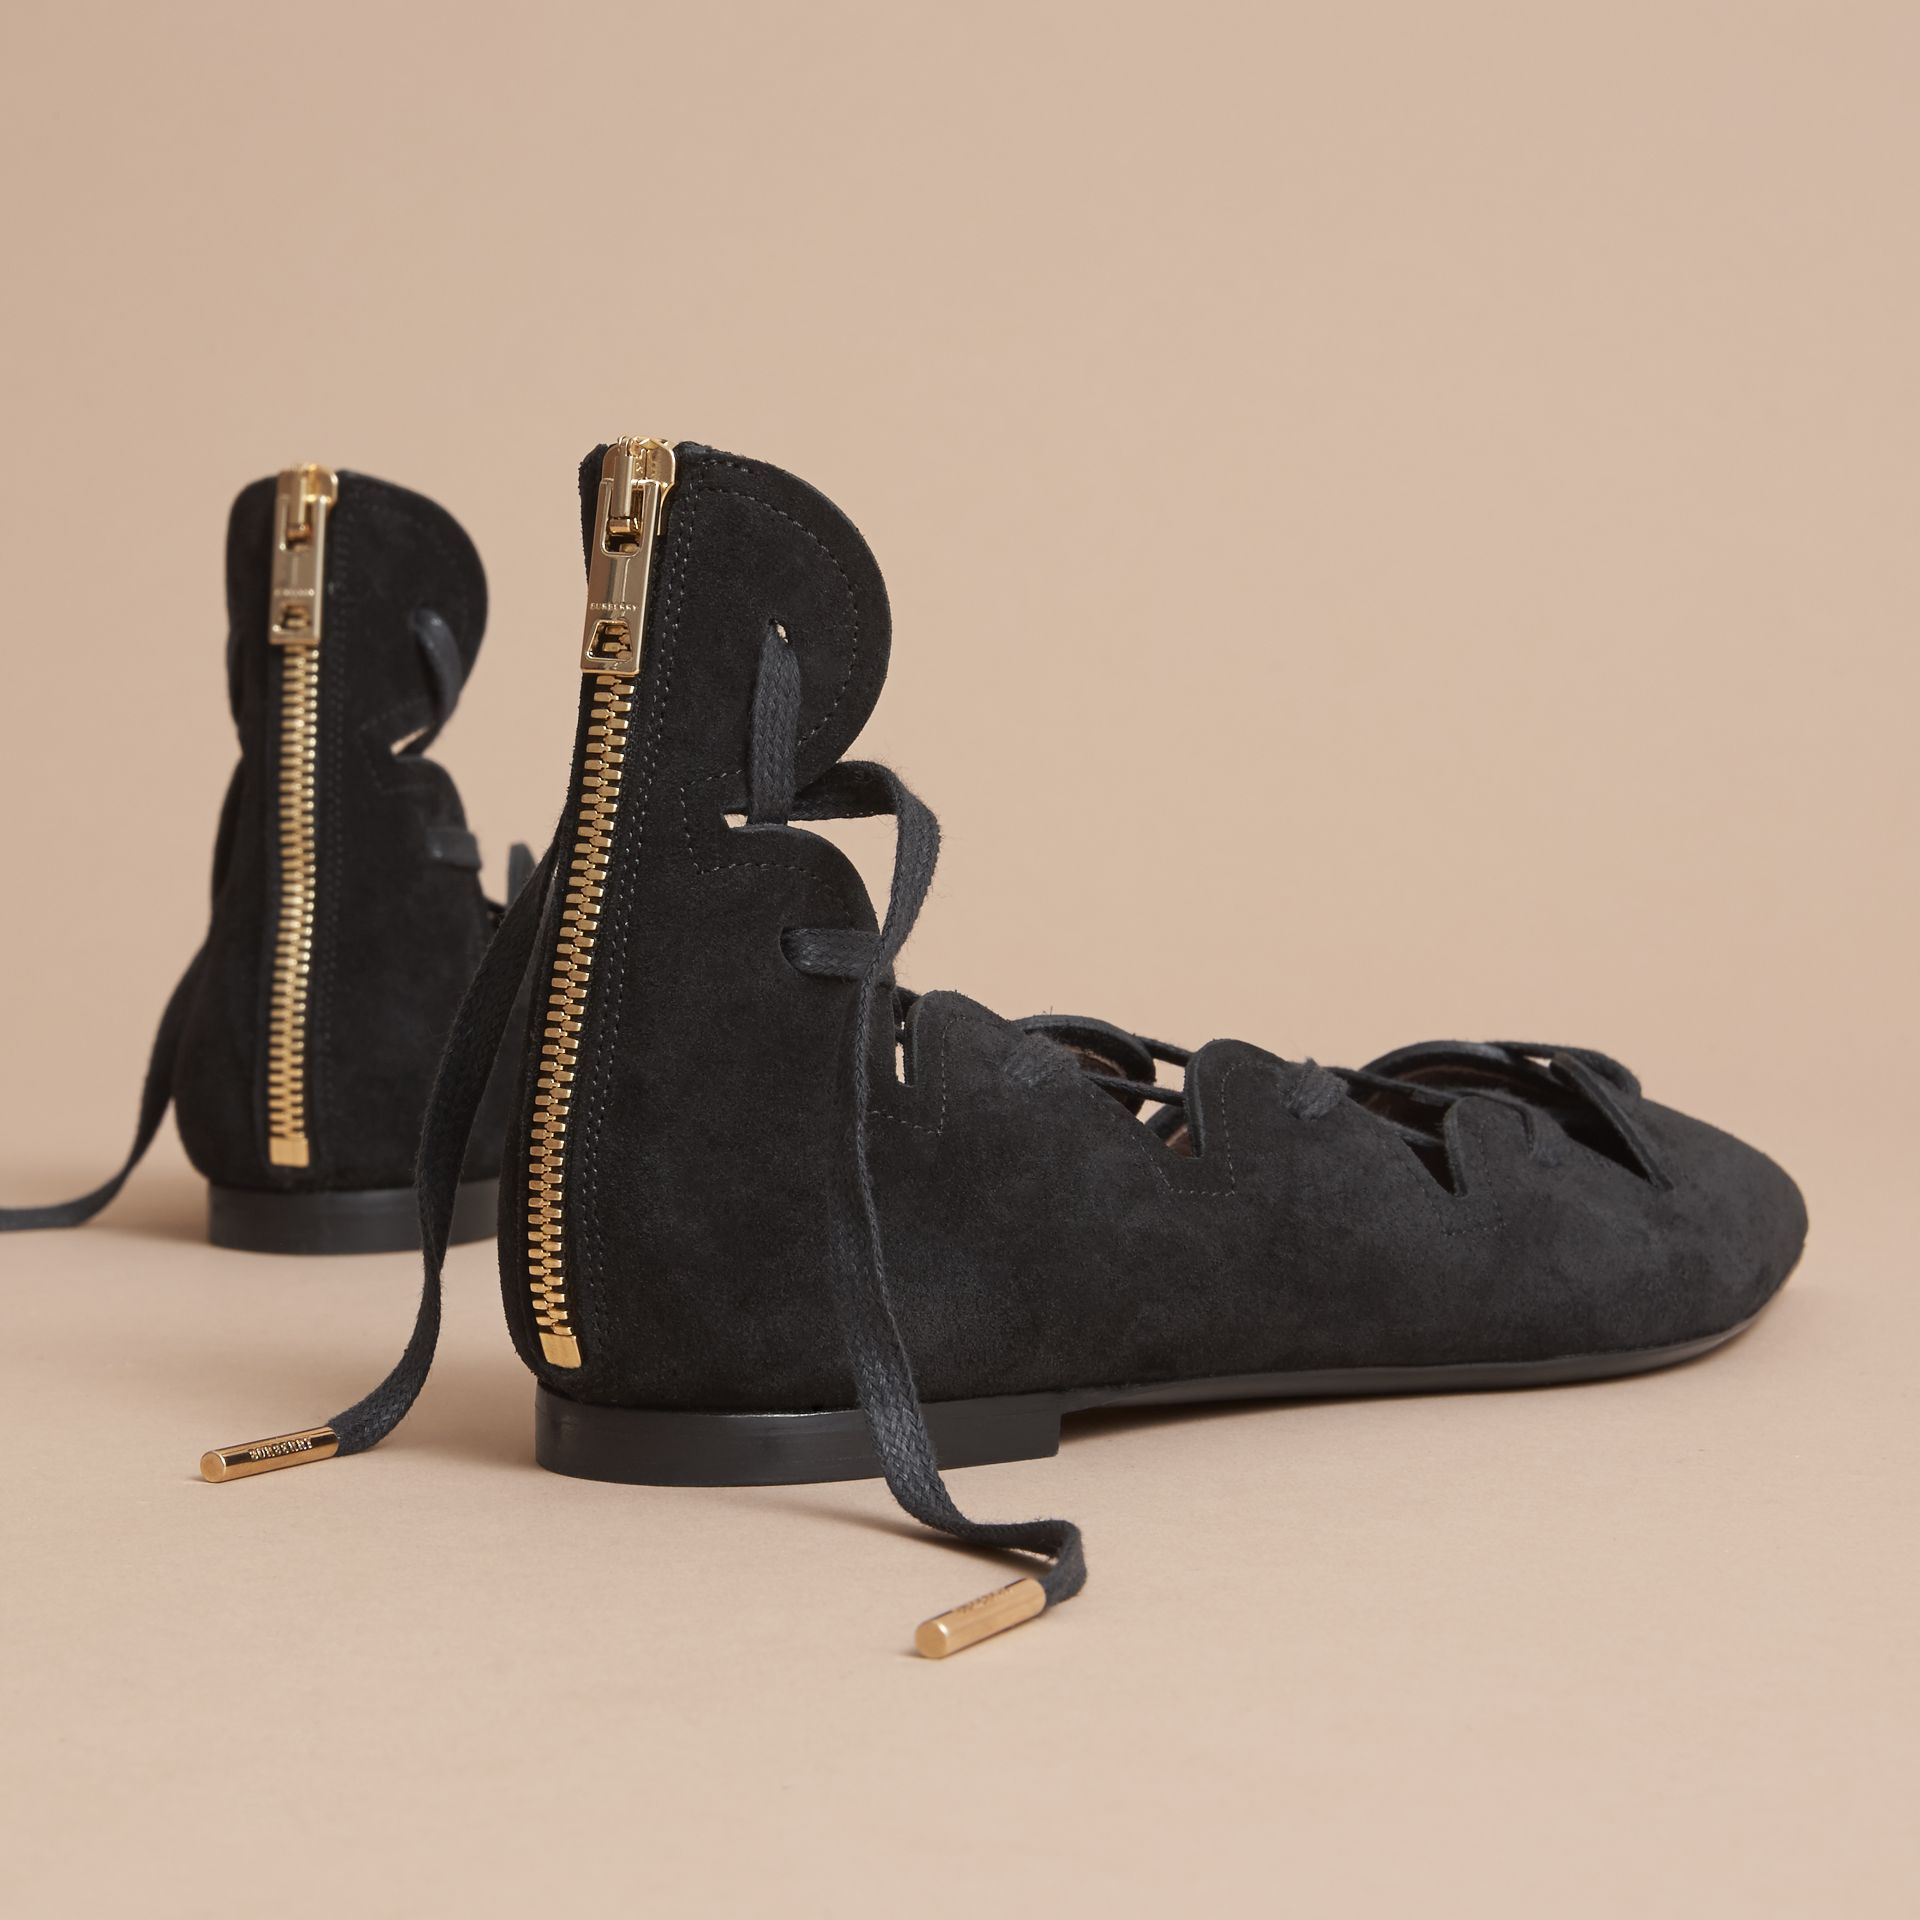 Scalloped Suede Lace-up Ballerinas in Black - Women | Burberry Australia - gallery image 4